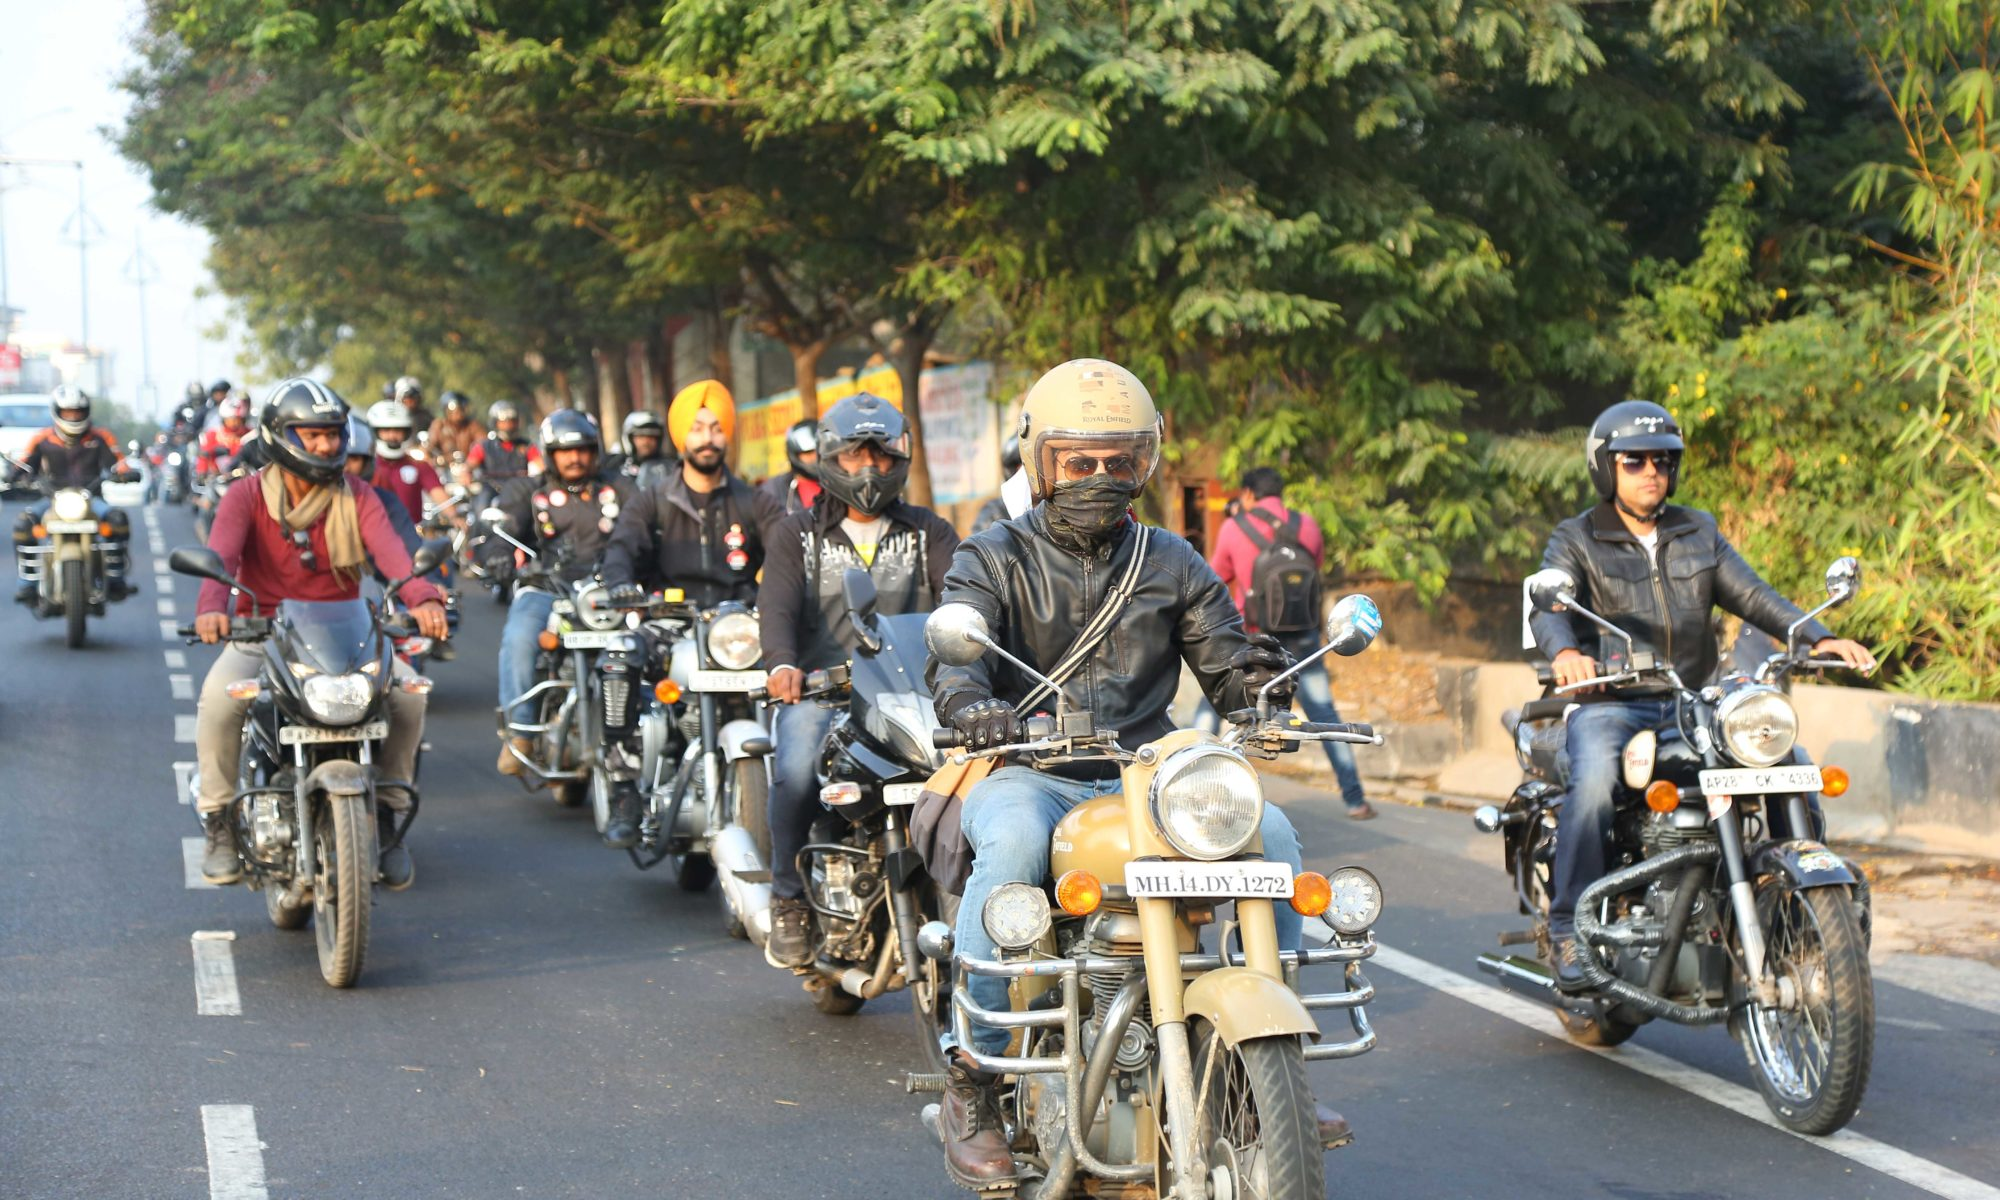 The Bikers ride on to spread awareness